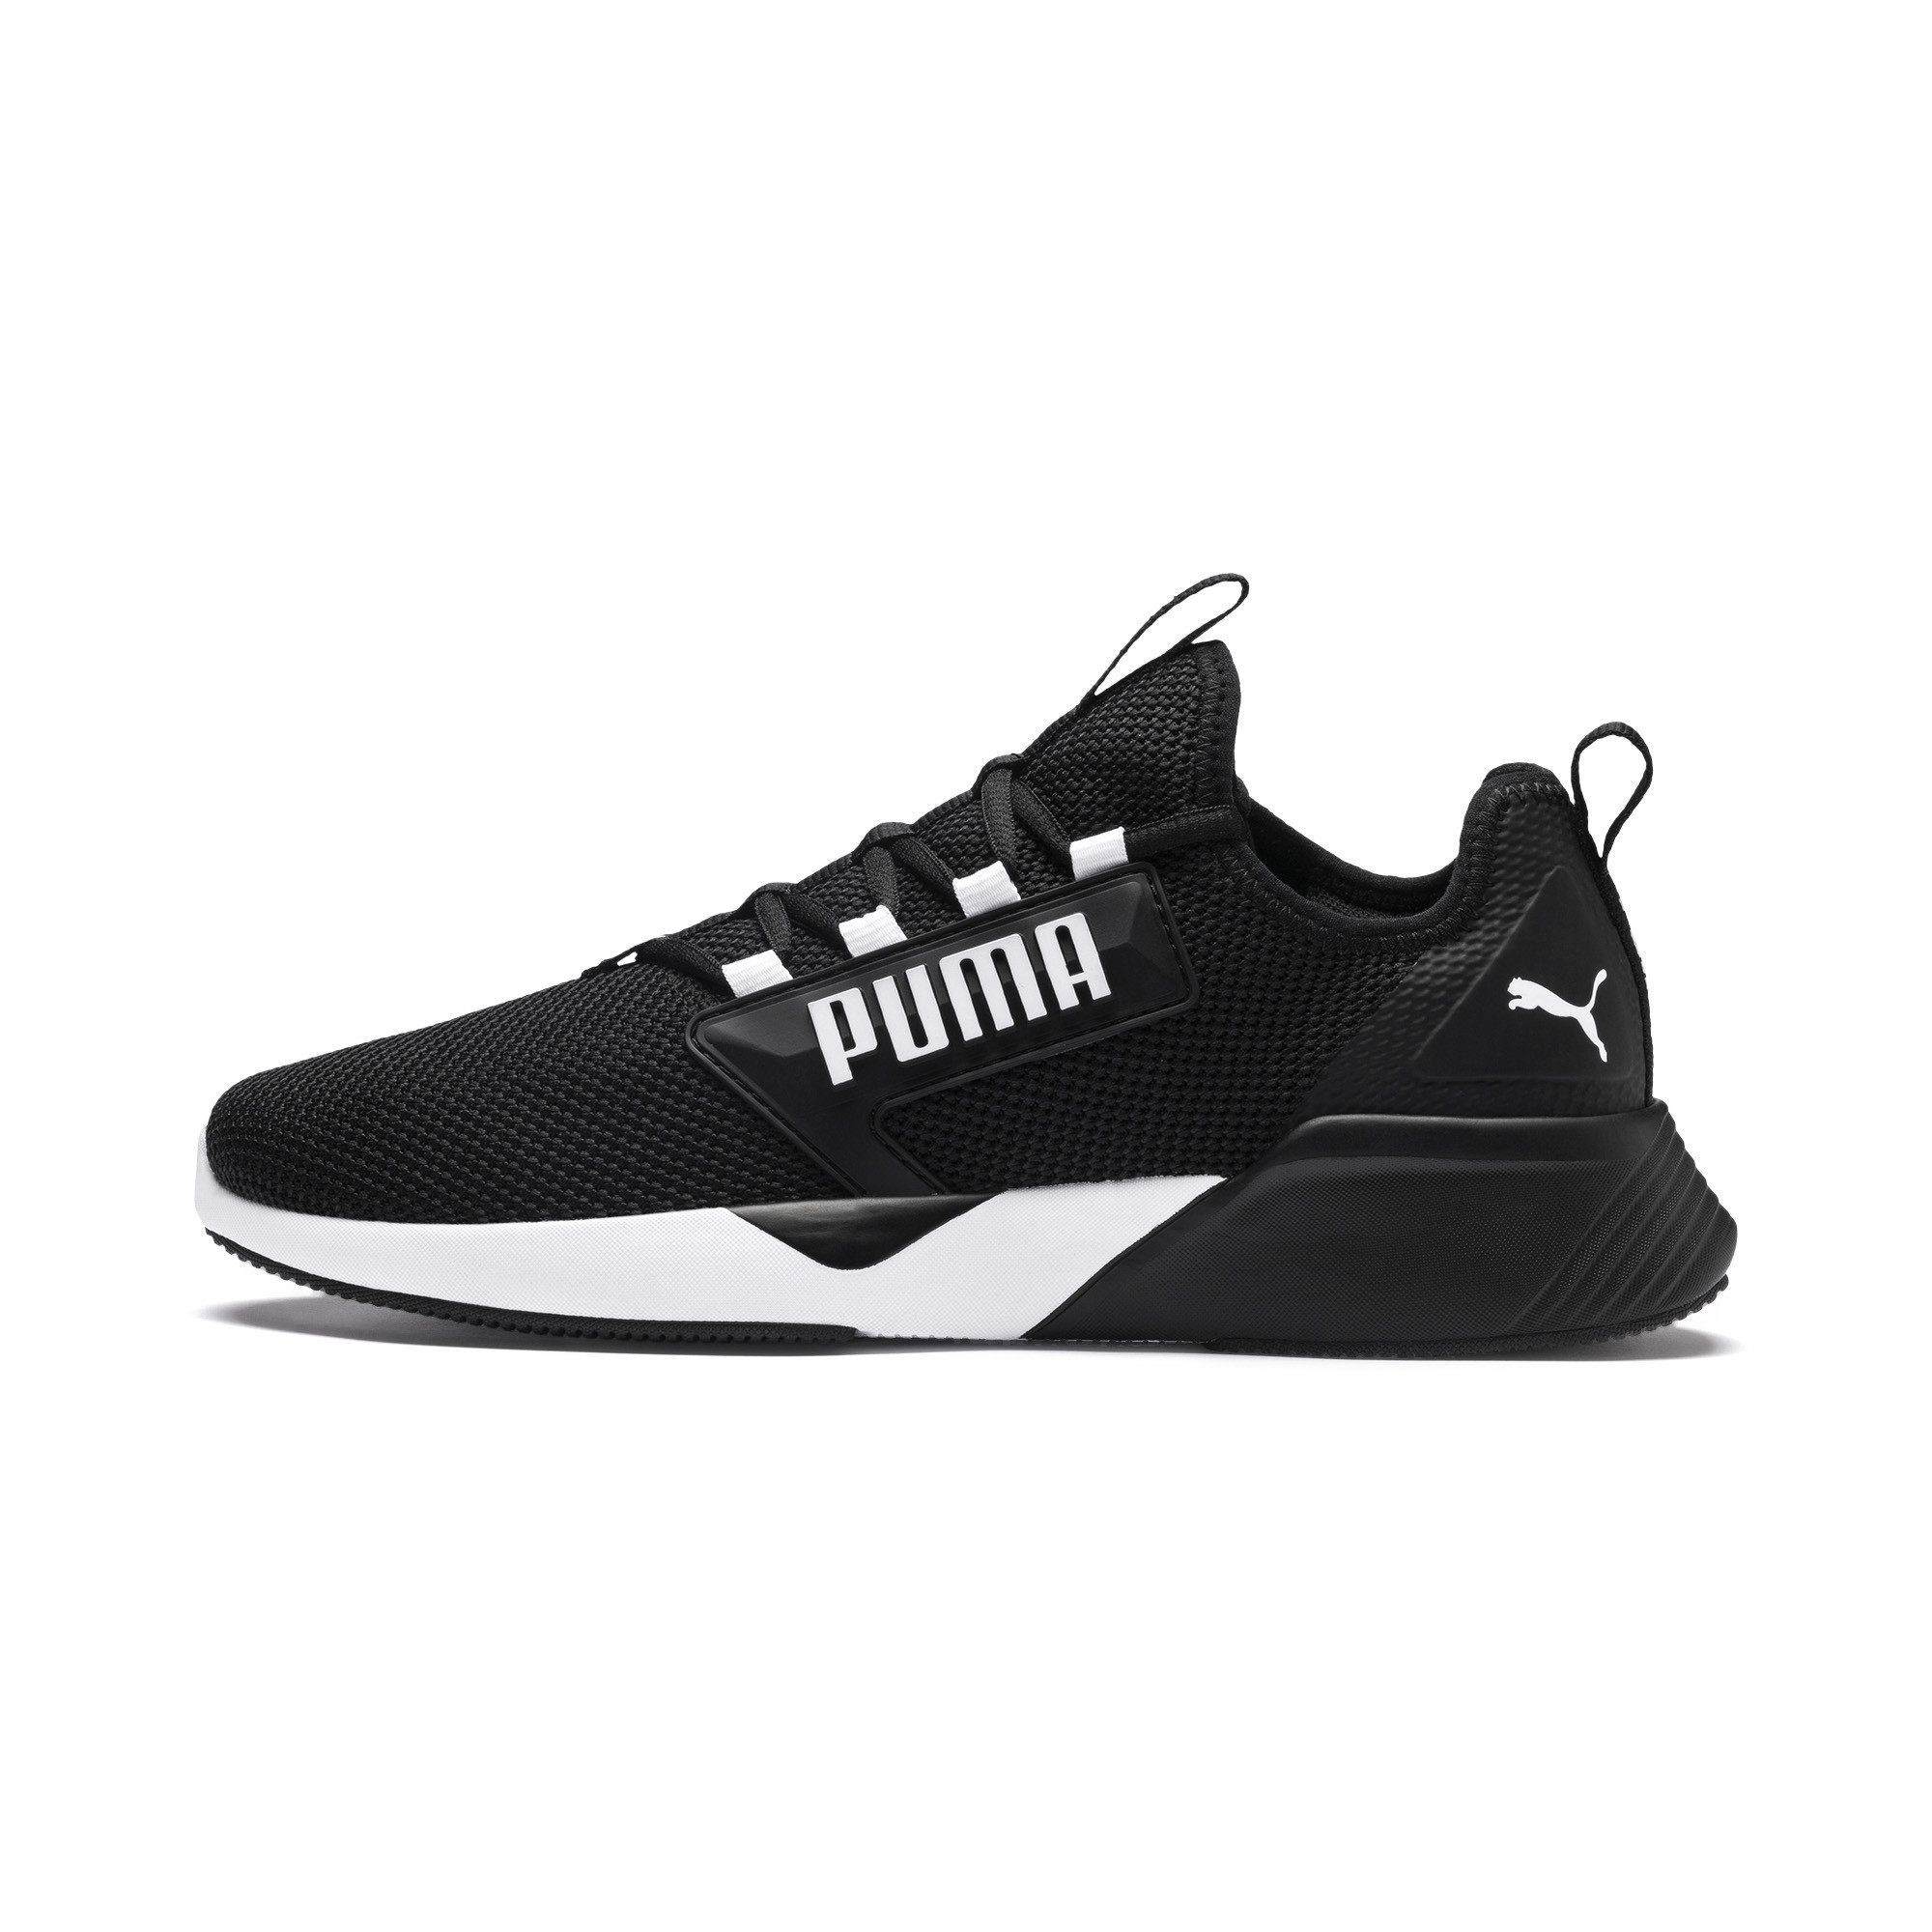 PUMA-Men-039-s-Retaliate-Training-Shoes thumbnail 6